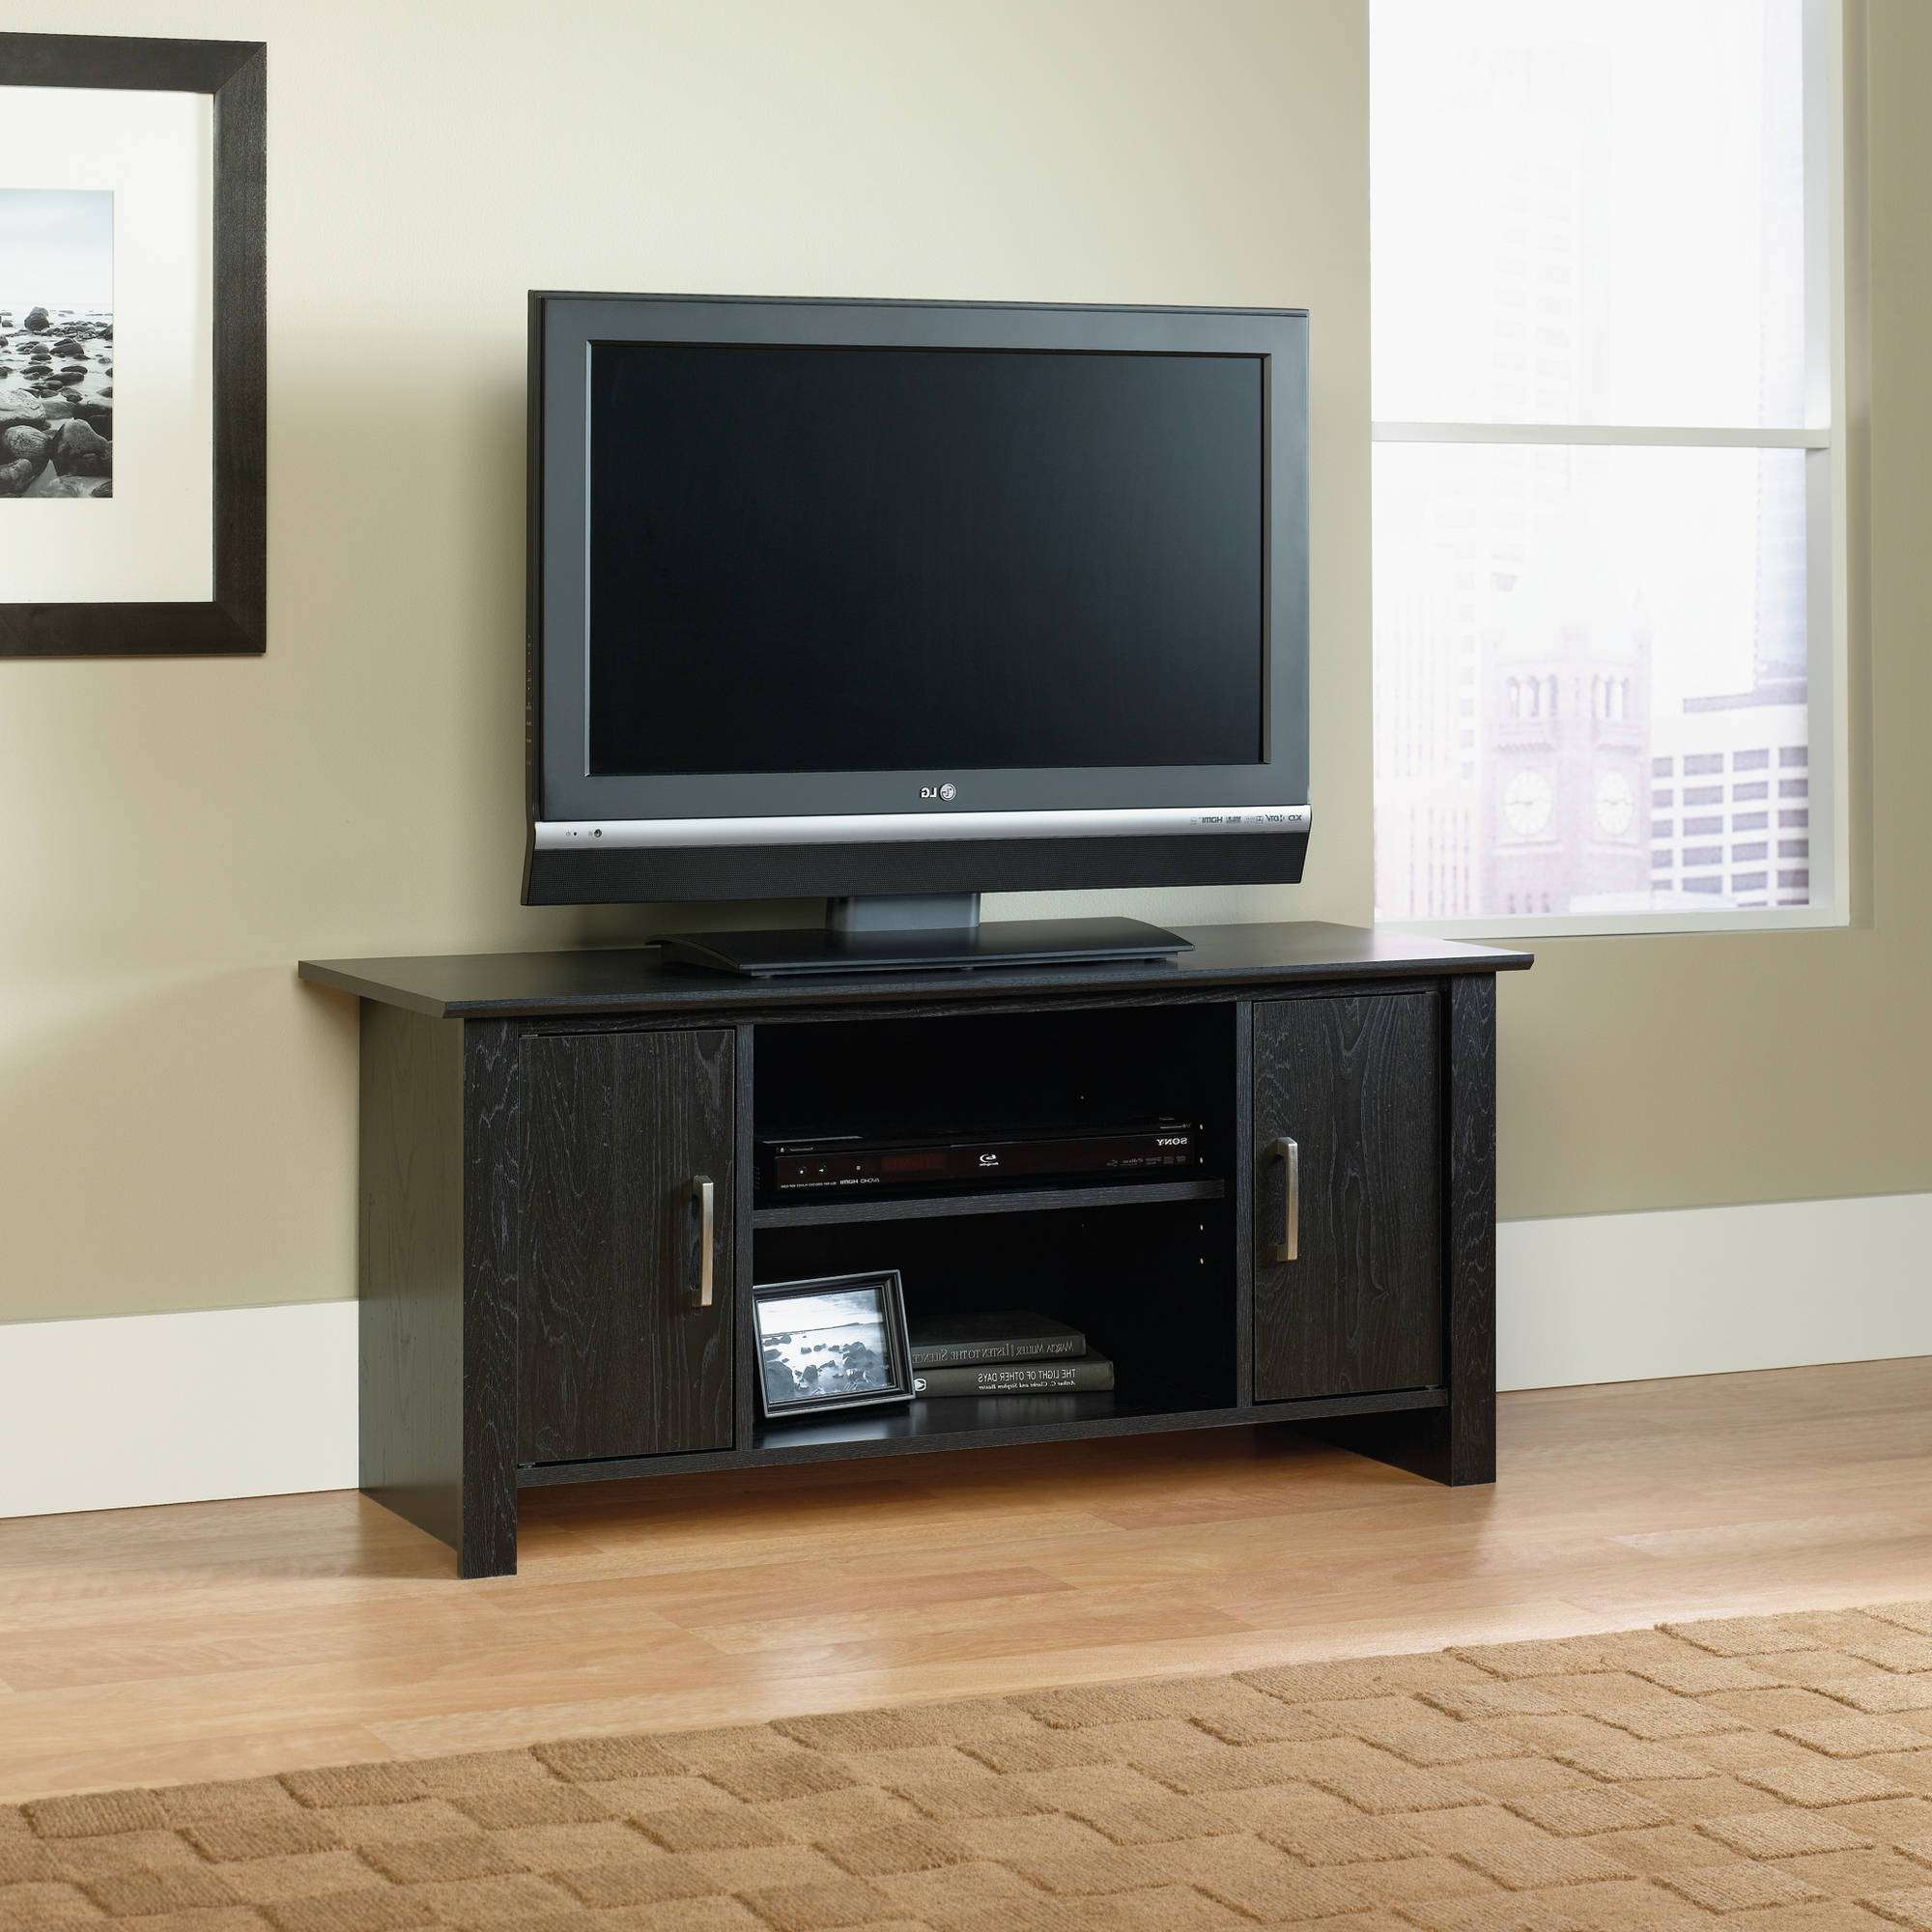 tv stands entertainment centers walmart intended for small tv stands gallery 7 of - Walmart Small Tv Stands